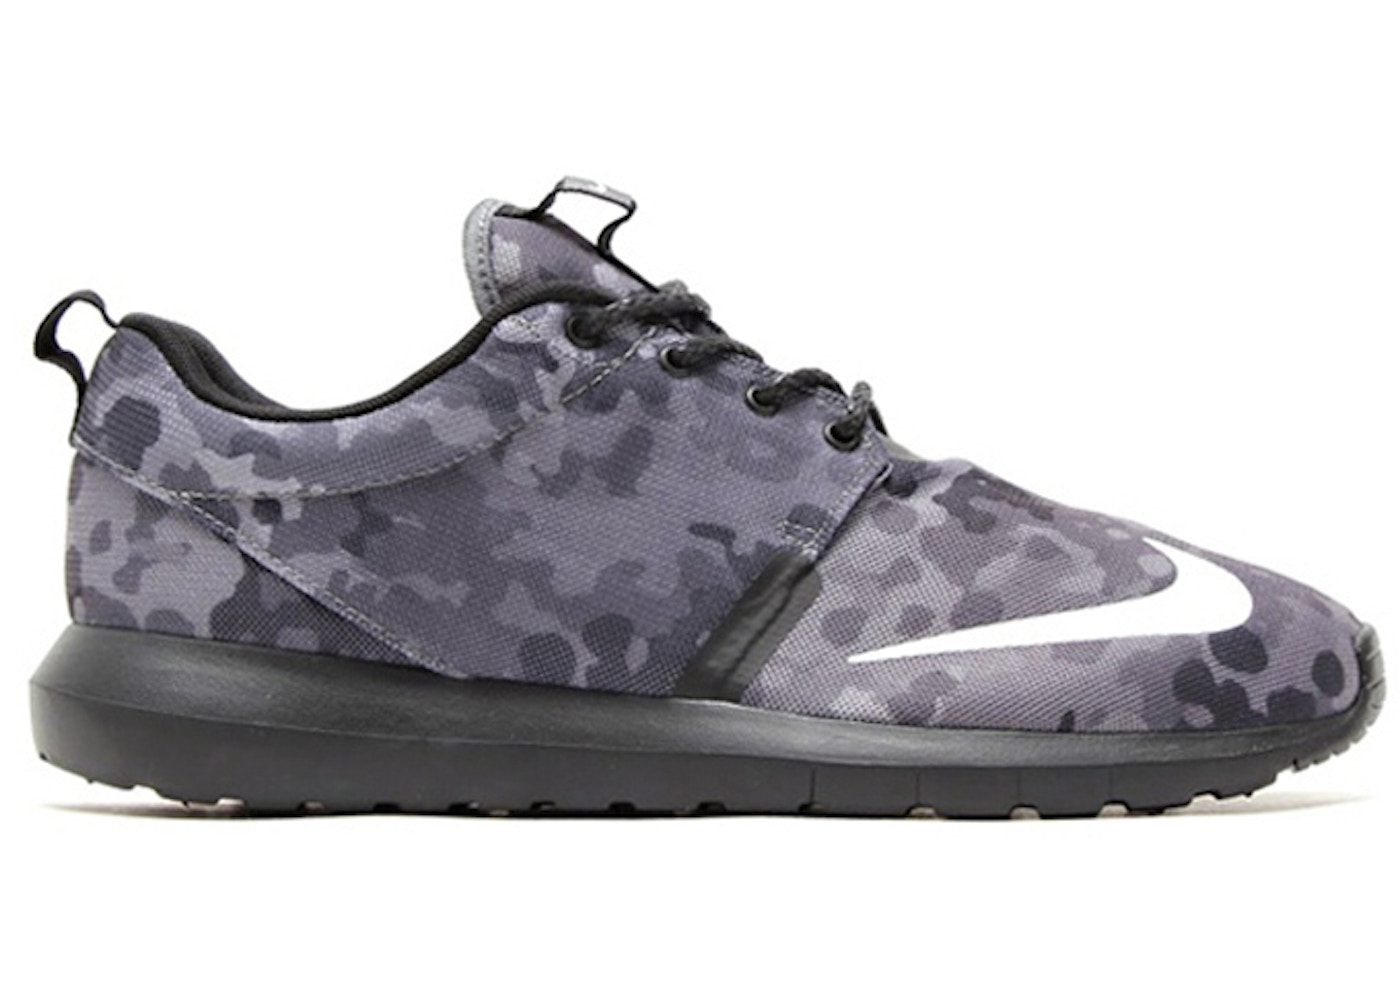 e3f1f92d Nike Roshe Run Dark Grey Camo — HypeAnalyzer